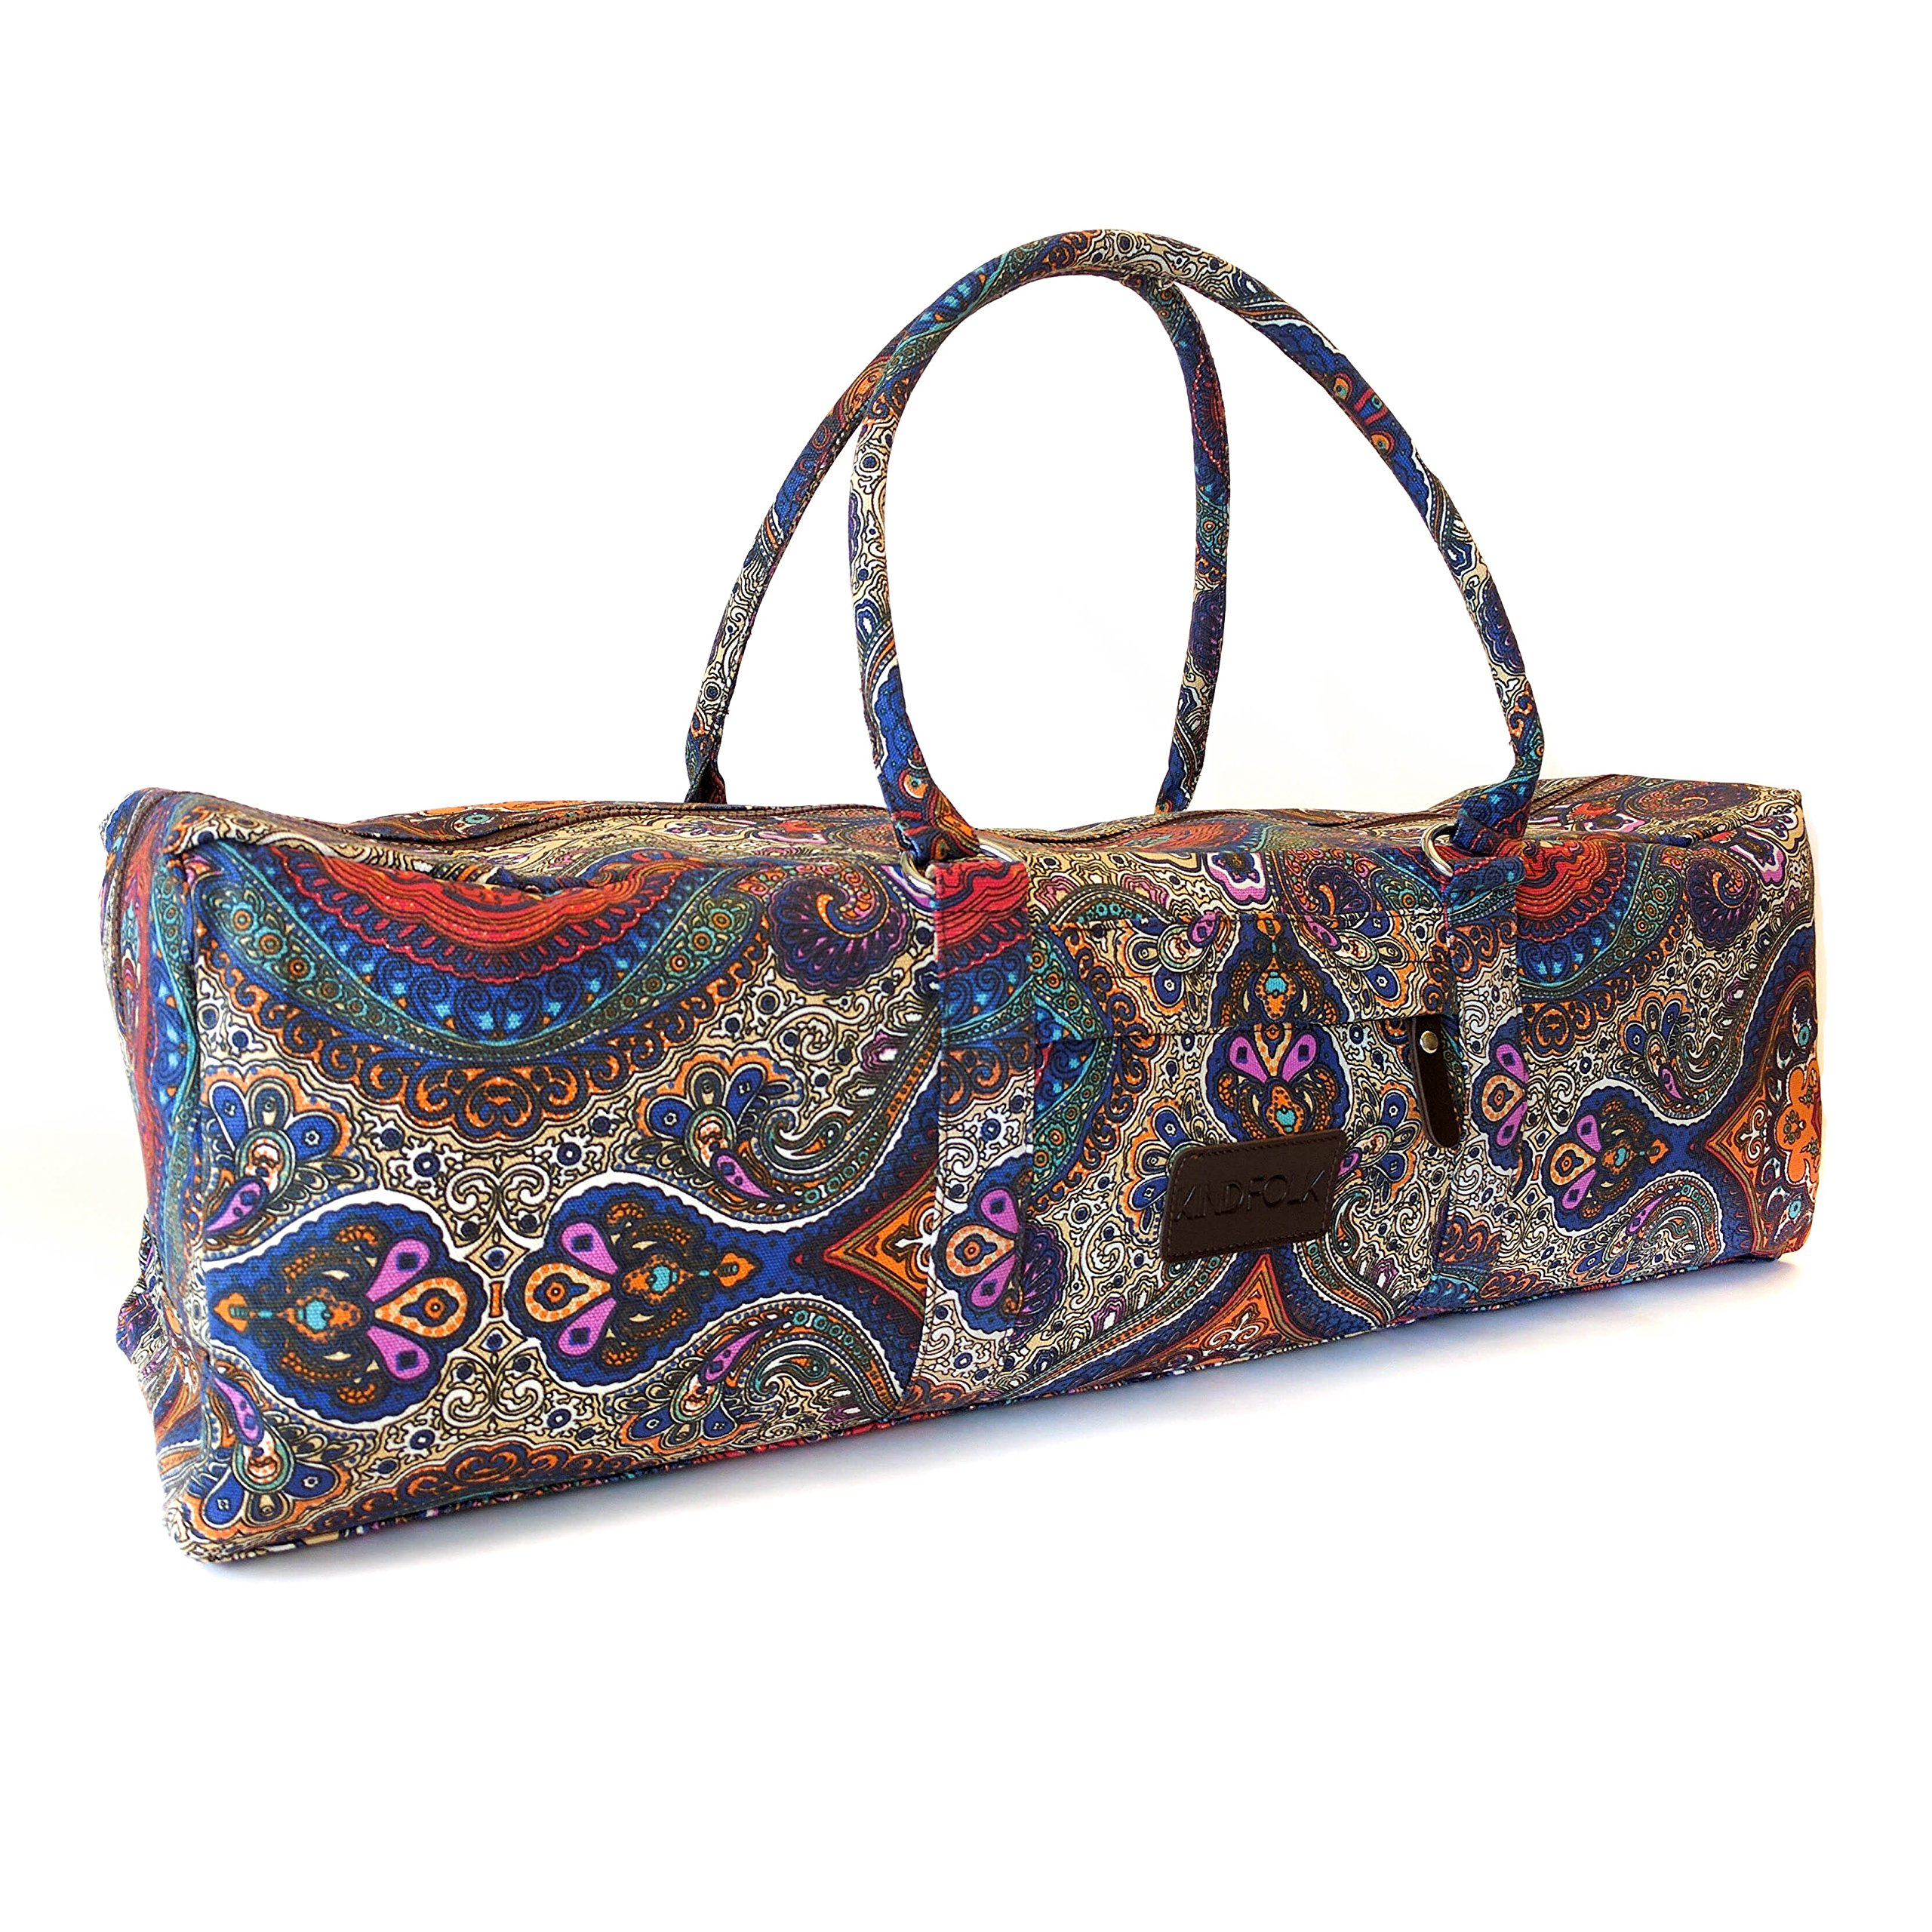 98b213d068a1 Kindfolk Yoga Mat Duffle Bag Patterned Canvas with Pocket and Zipper. By  Kindfolk